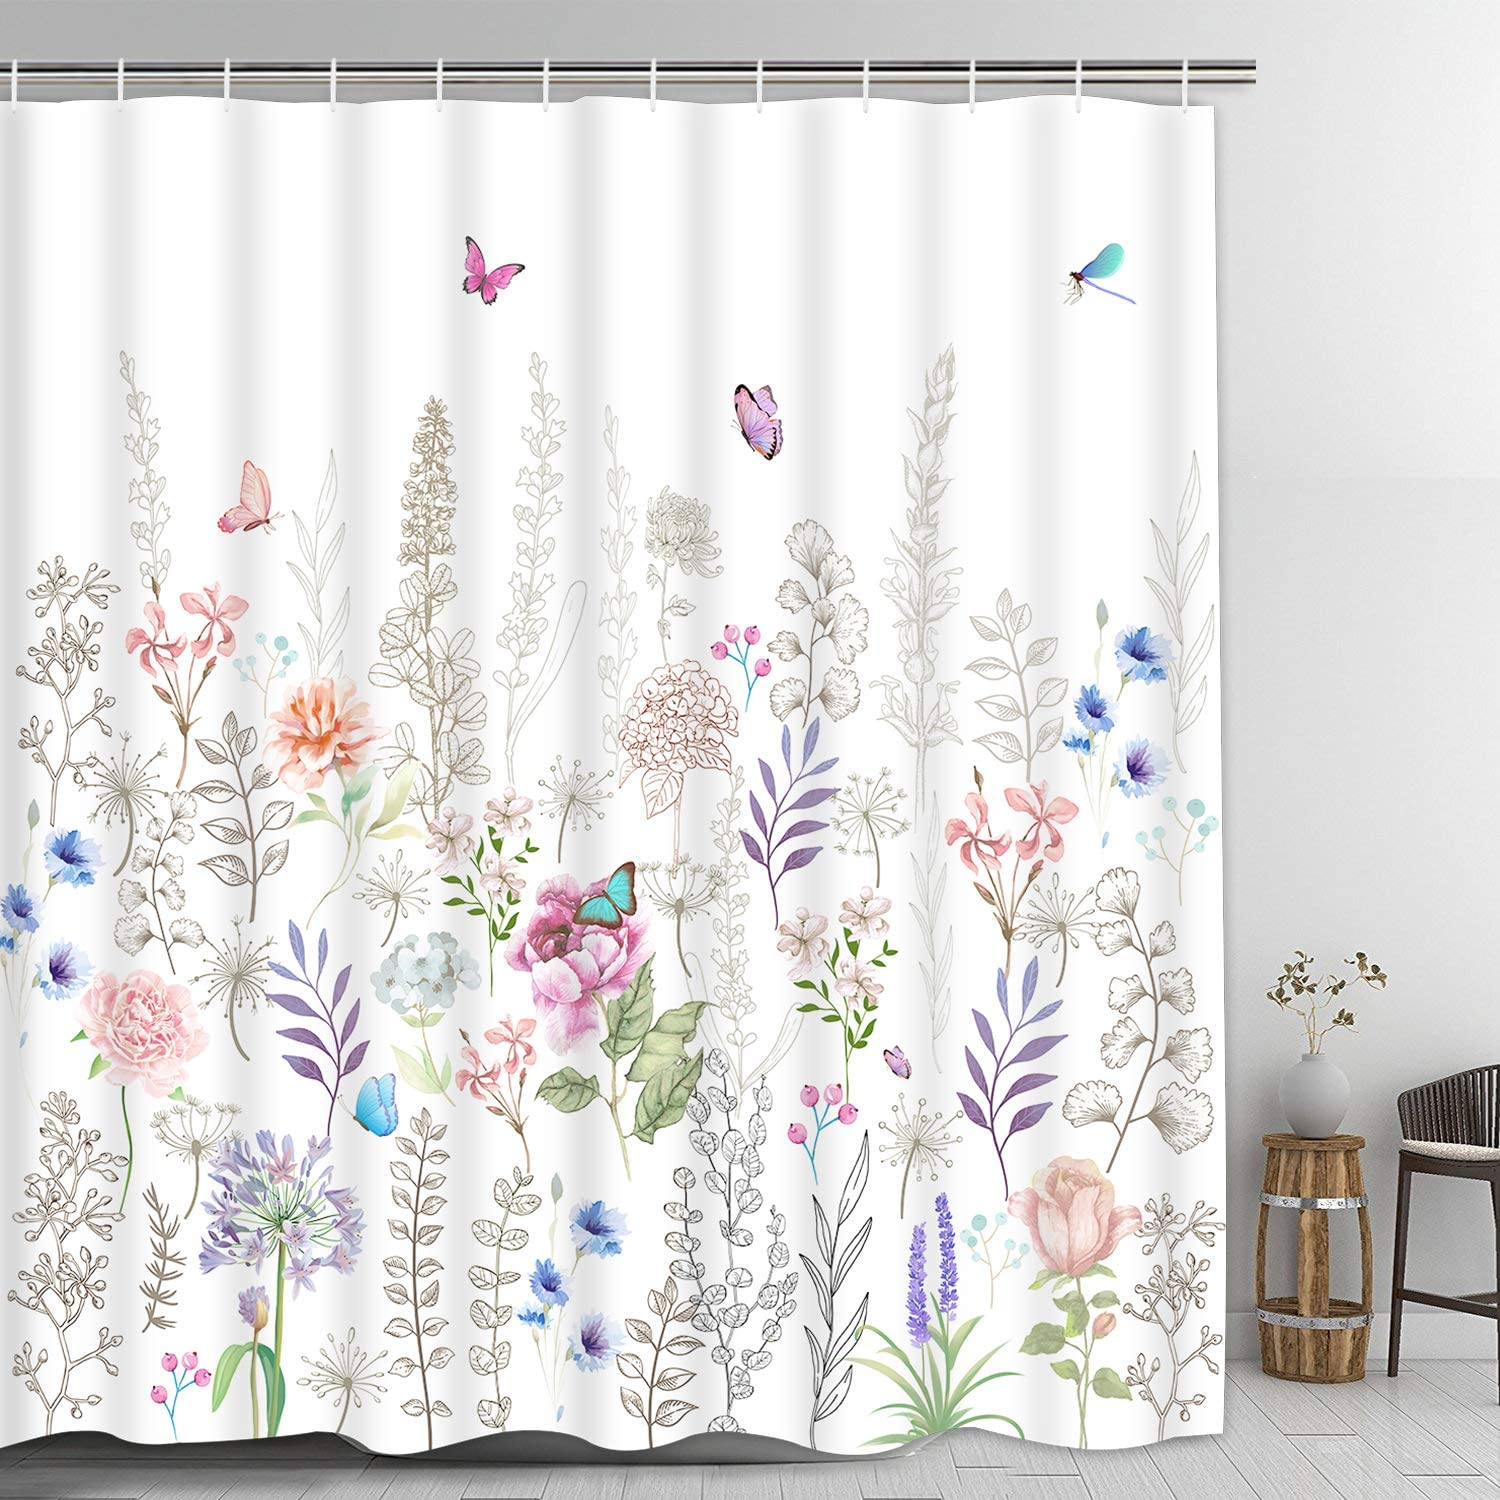 Pknoclan Colorful Floral Shower Curtain, White Boho Flowers Shower Curtain with 12 Hooks, Rustic Country Shower Curtain with Butterflies Plants, Waterproof Fabric Natural Bathroom Curtain